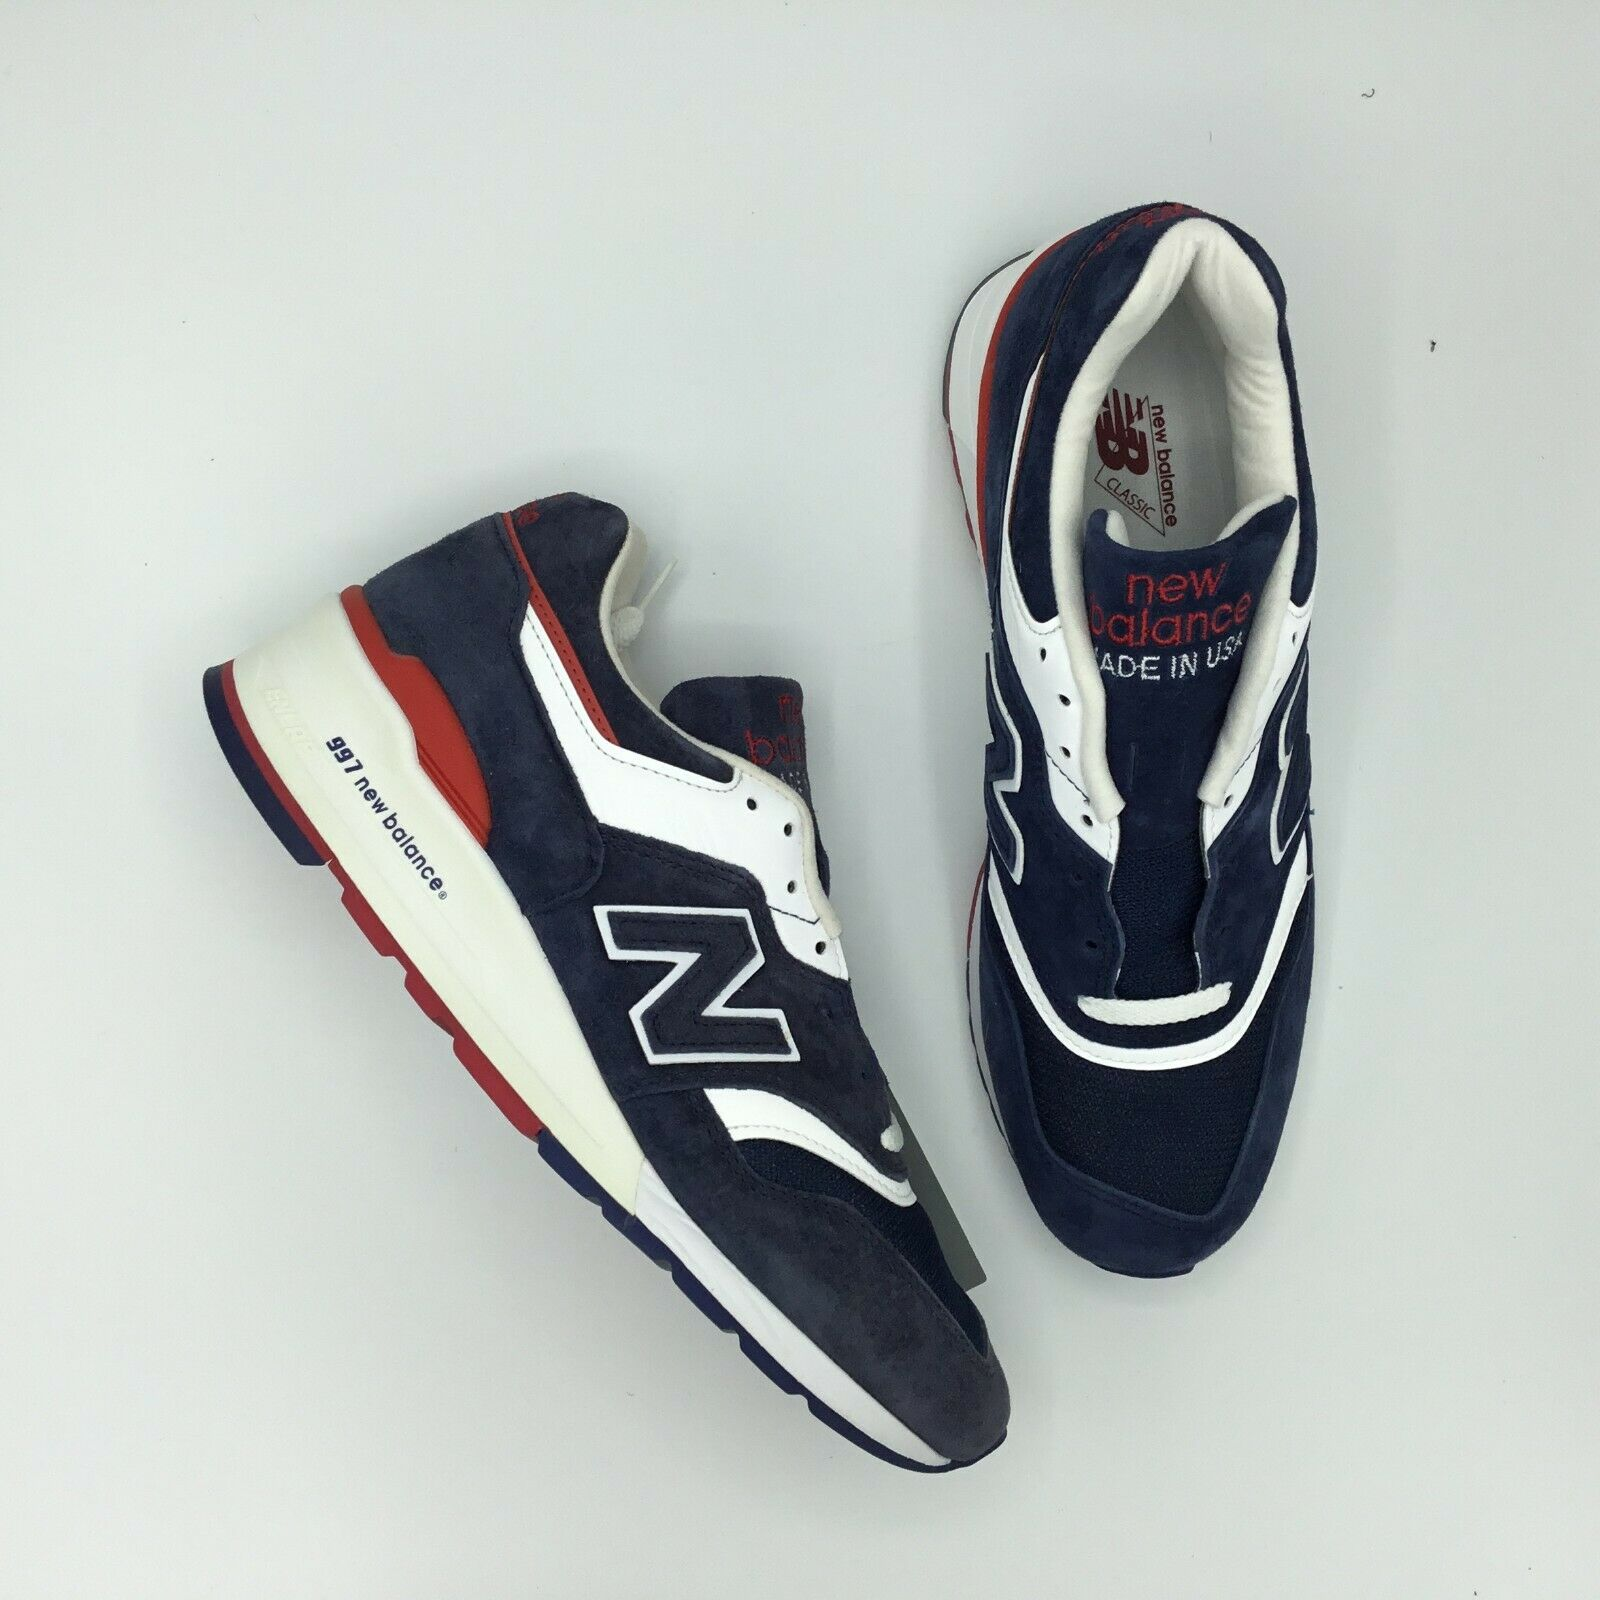 SALE NEW BALANCE 997 M997 M997CYON NAVY Explore By By By Air Dimensione 9 BRAND NEW f85094